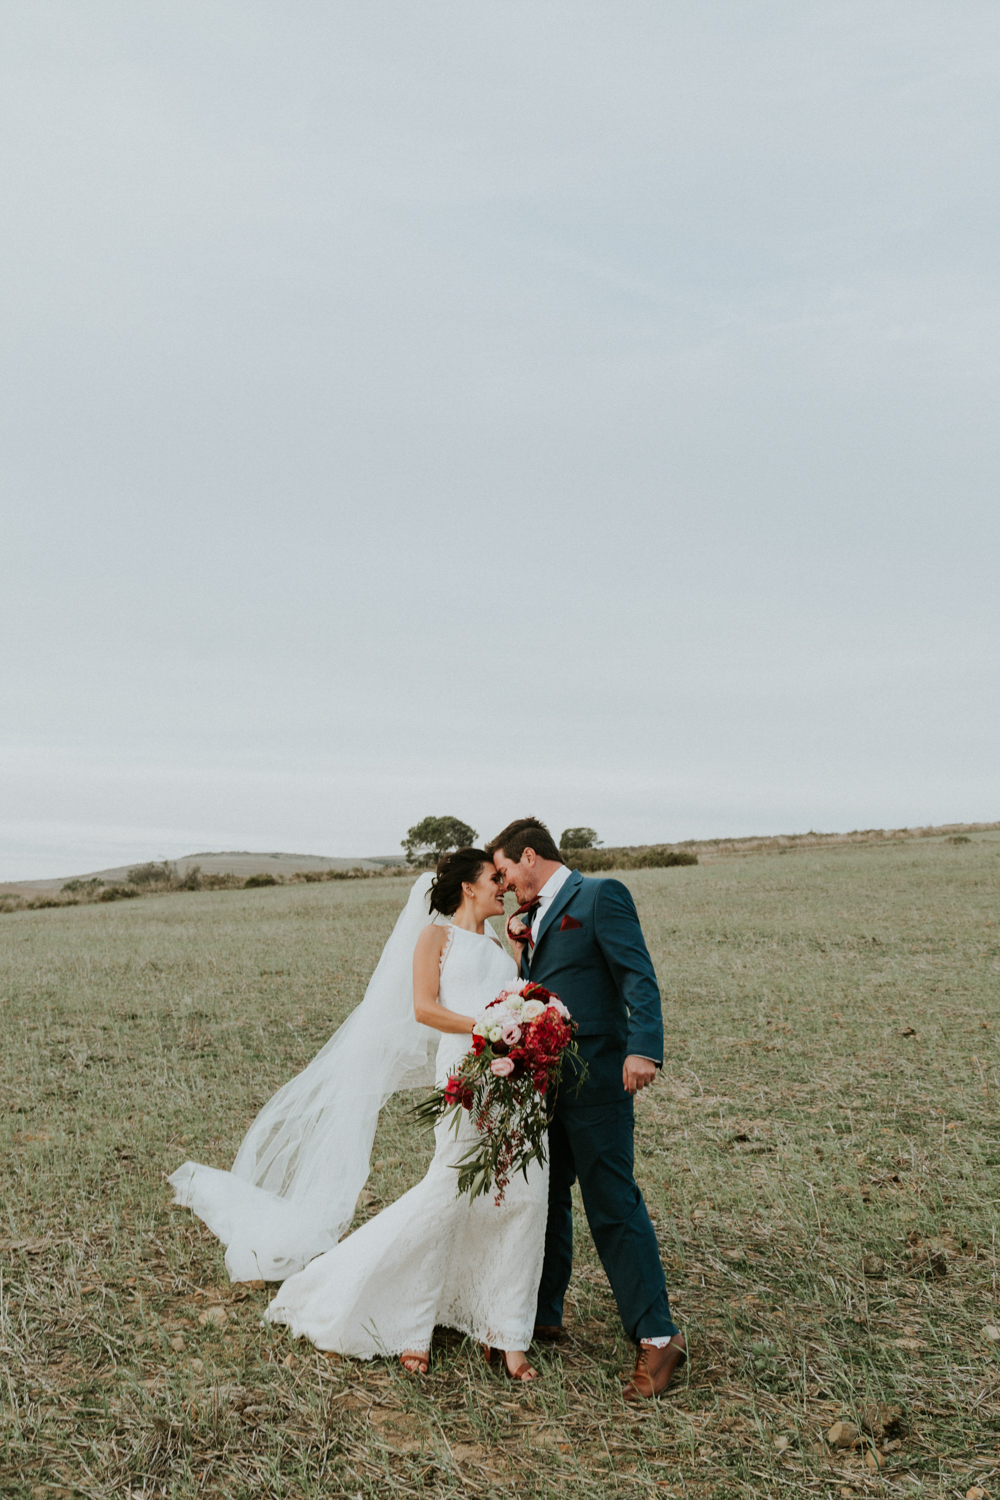 Cape Town Winter Wedding - Bianca Asher Photography-103.jpg